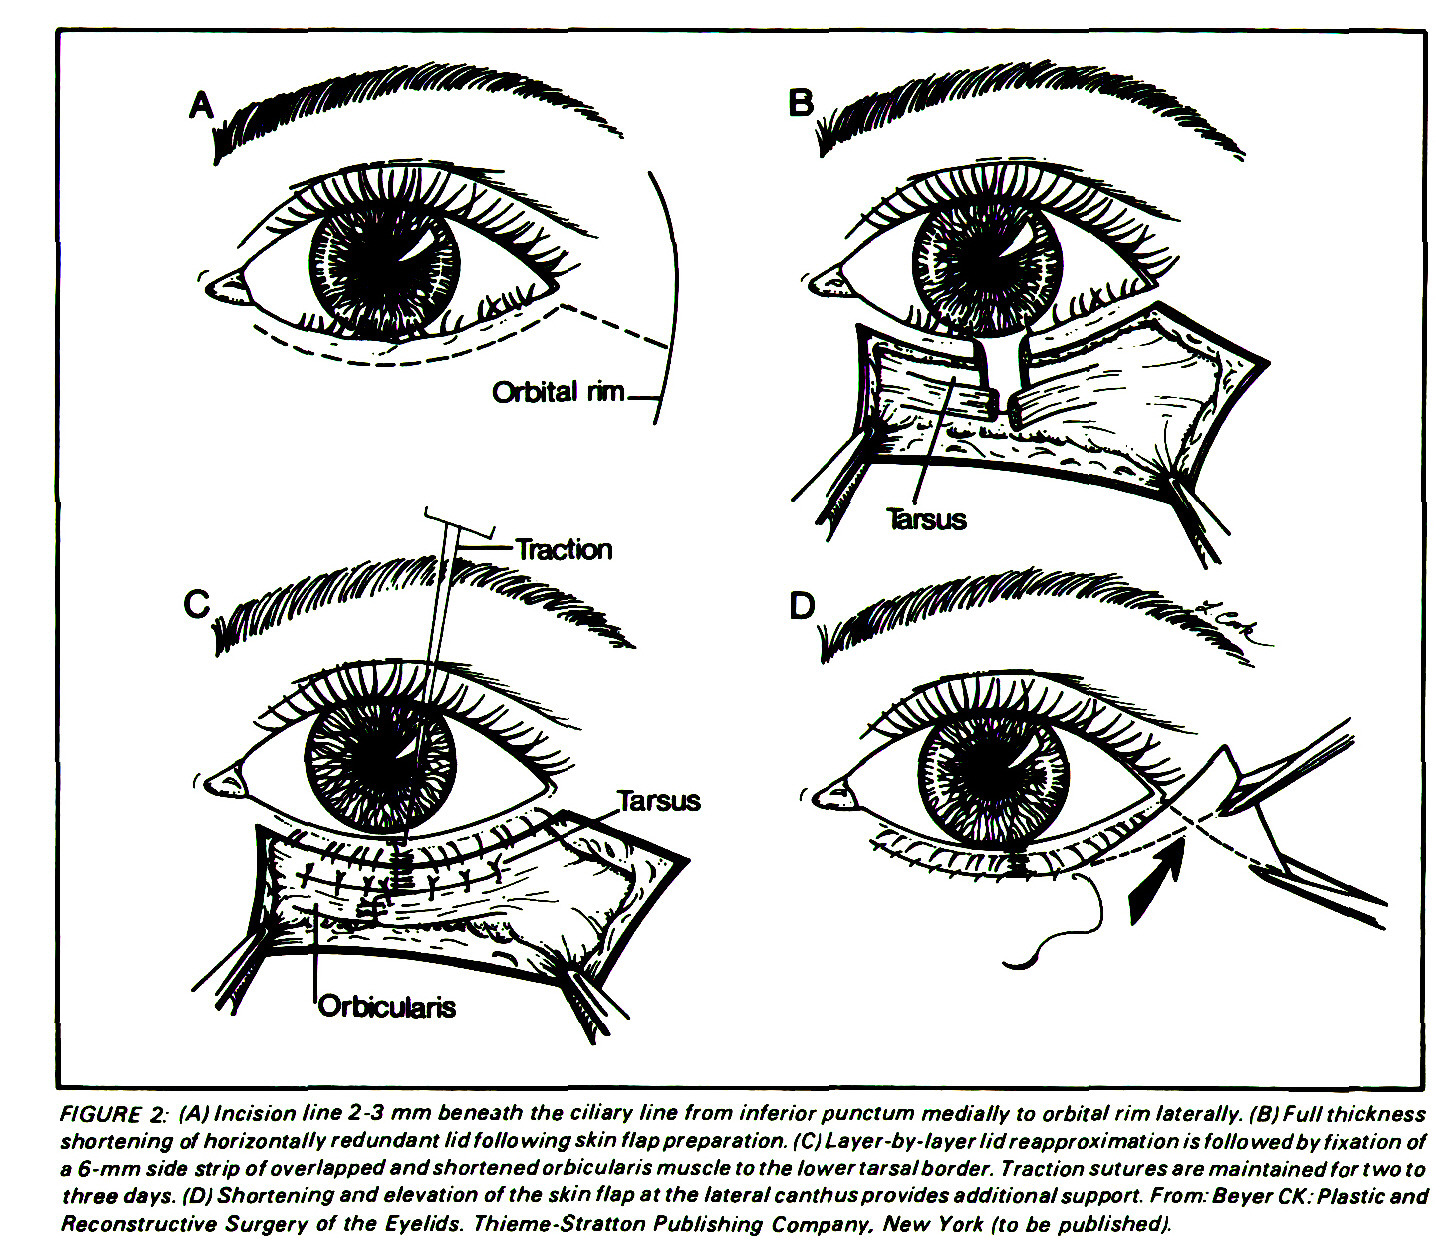 Modification of the Hill Procedure for Recurrent